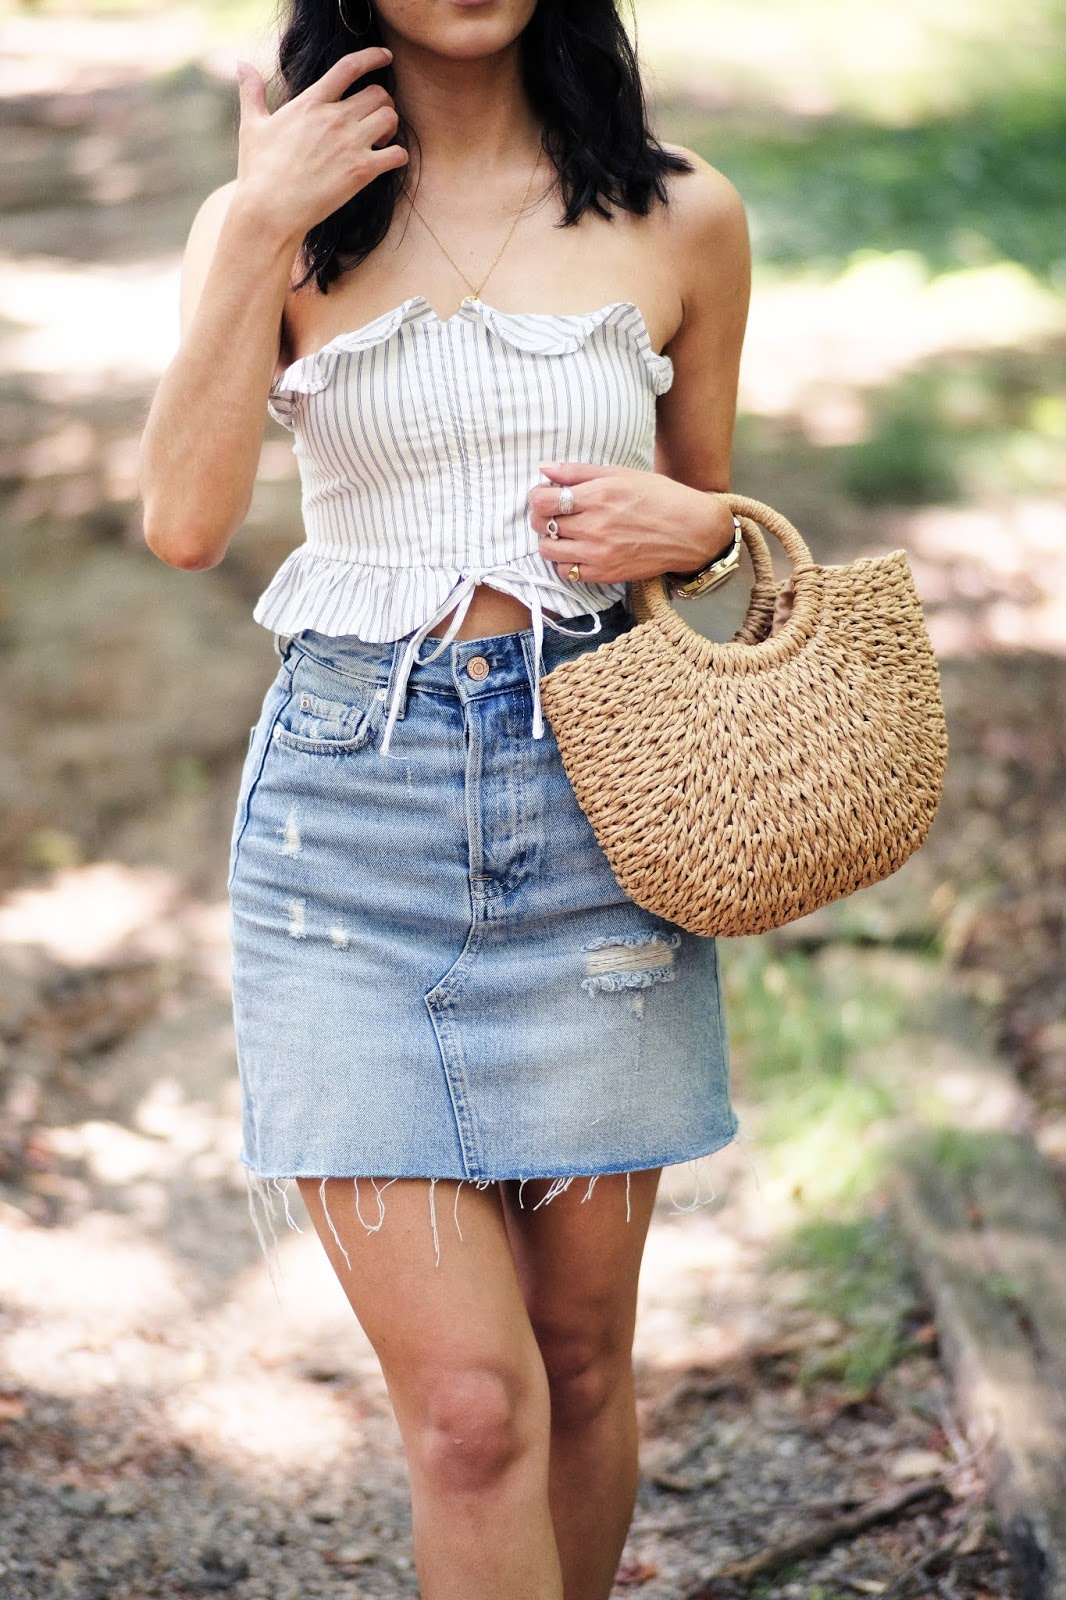 lulus ruffle stripe top, high waisted h&m denim skirt, lulus straw bag